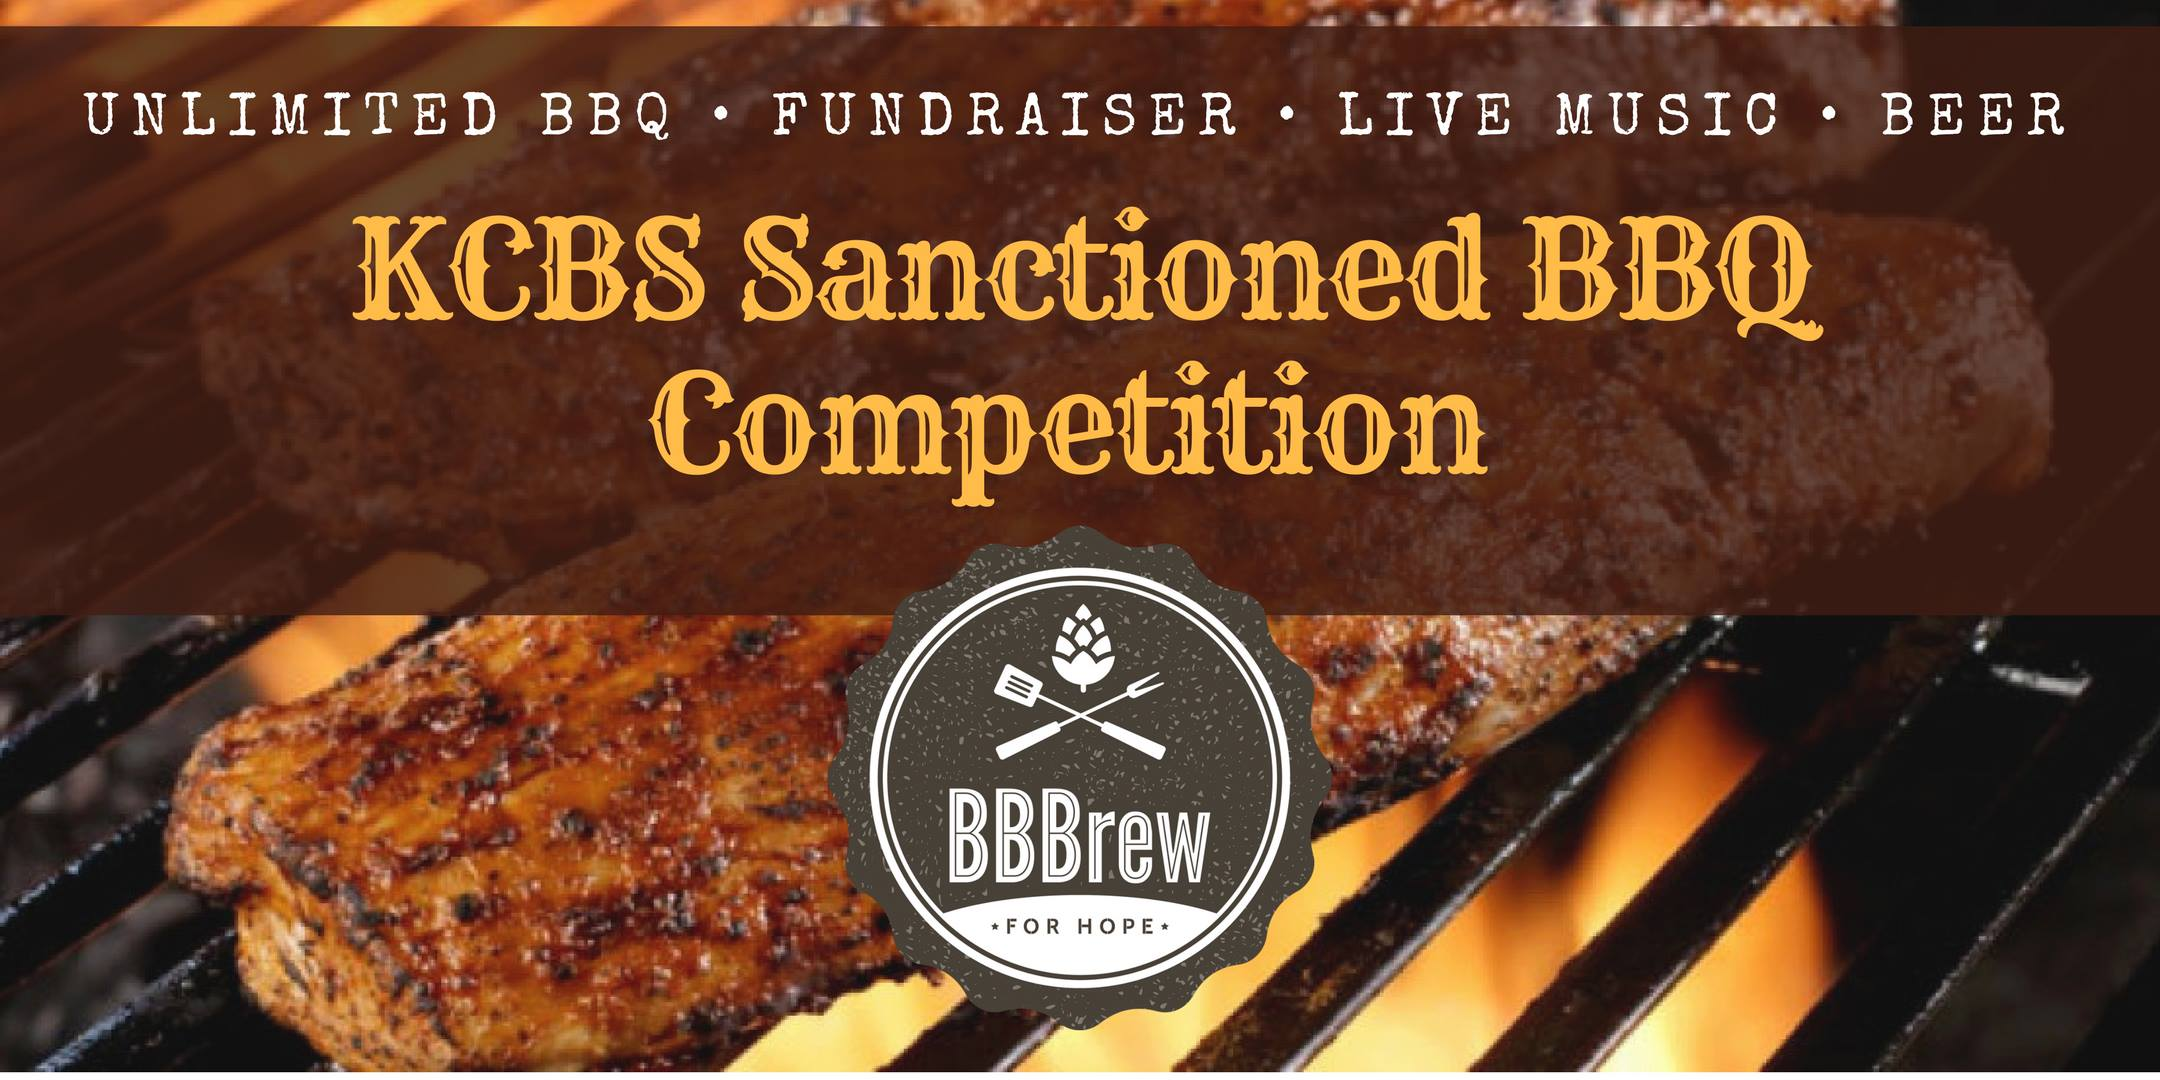 KCBS Sanctioned BBQ Competition Logo. Image of Steak on Grill